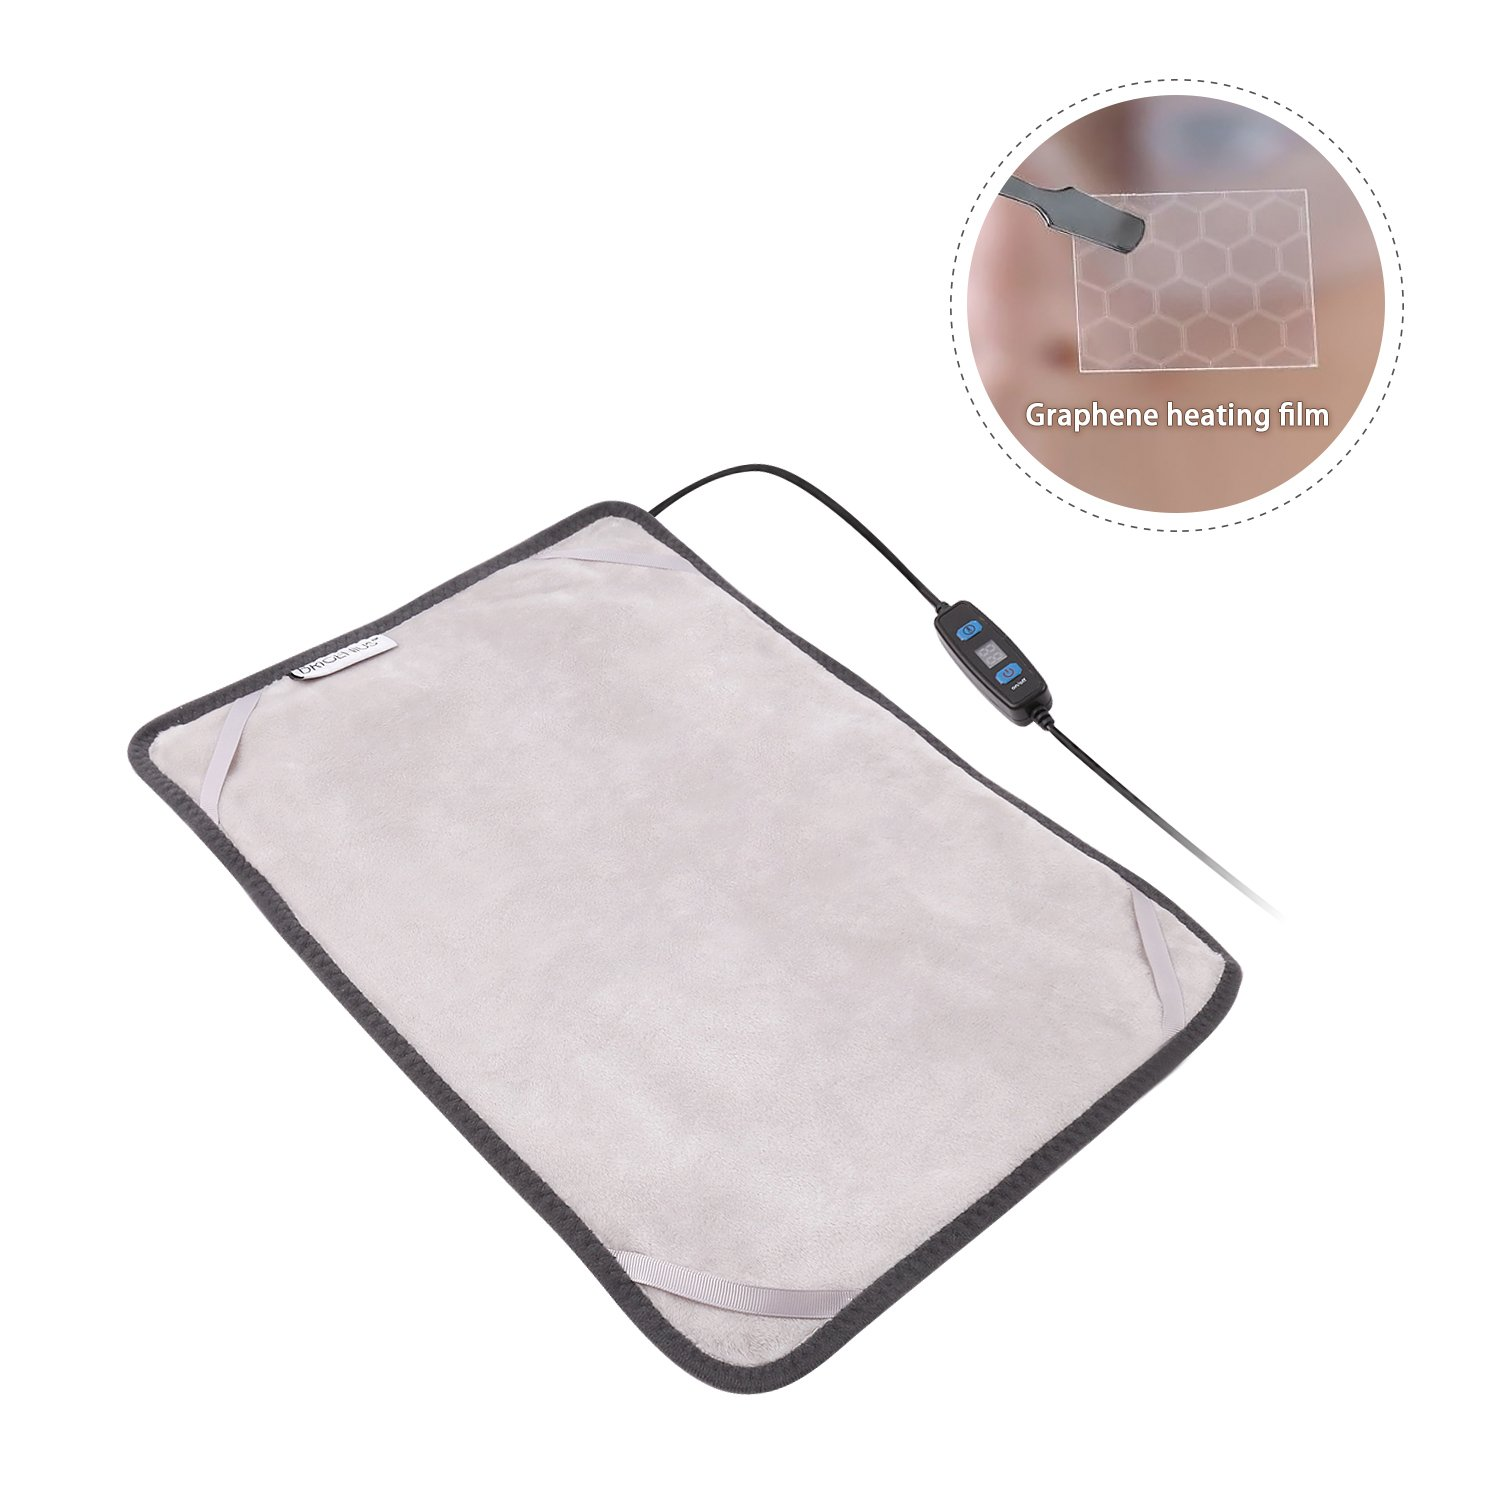 Graphene Far Infrared Electric Heating Pad, 3 Heat-Settings/ 12 Volt Output, 12*15 Inches Small Heating Pad Wrap for Neck Shoulder Cramps Back Pain Relief by BriGenius